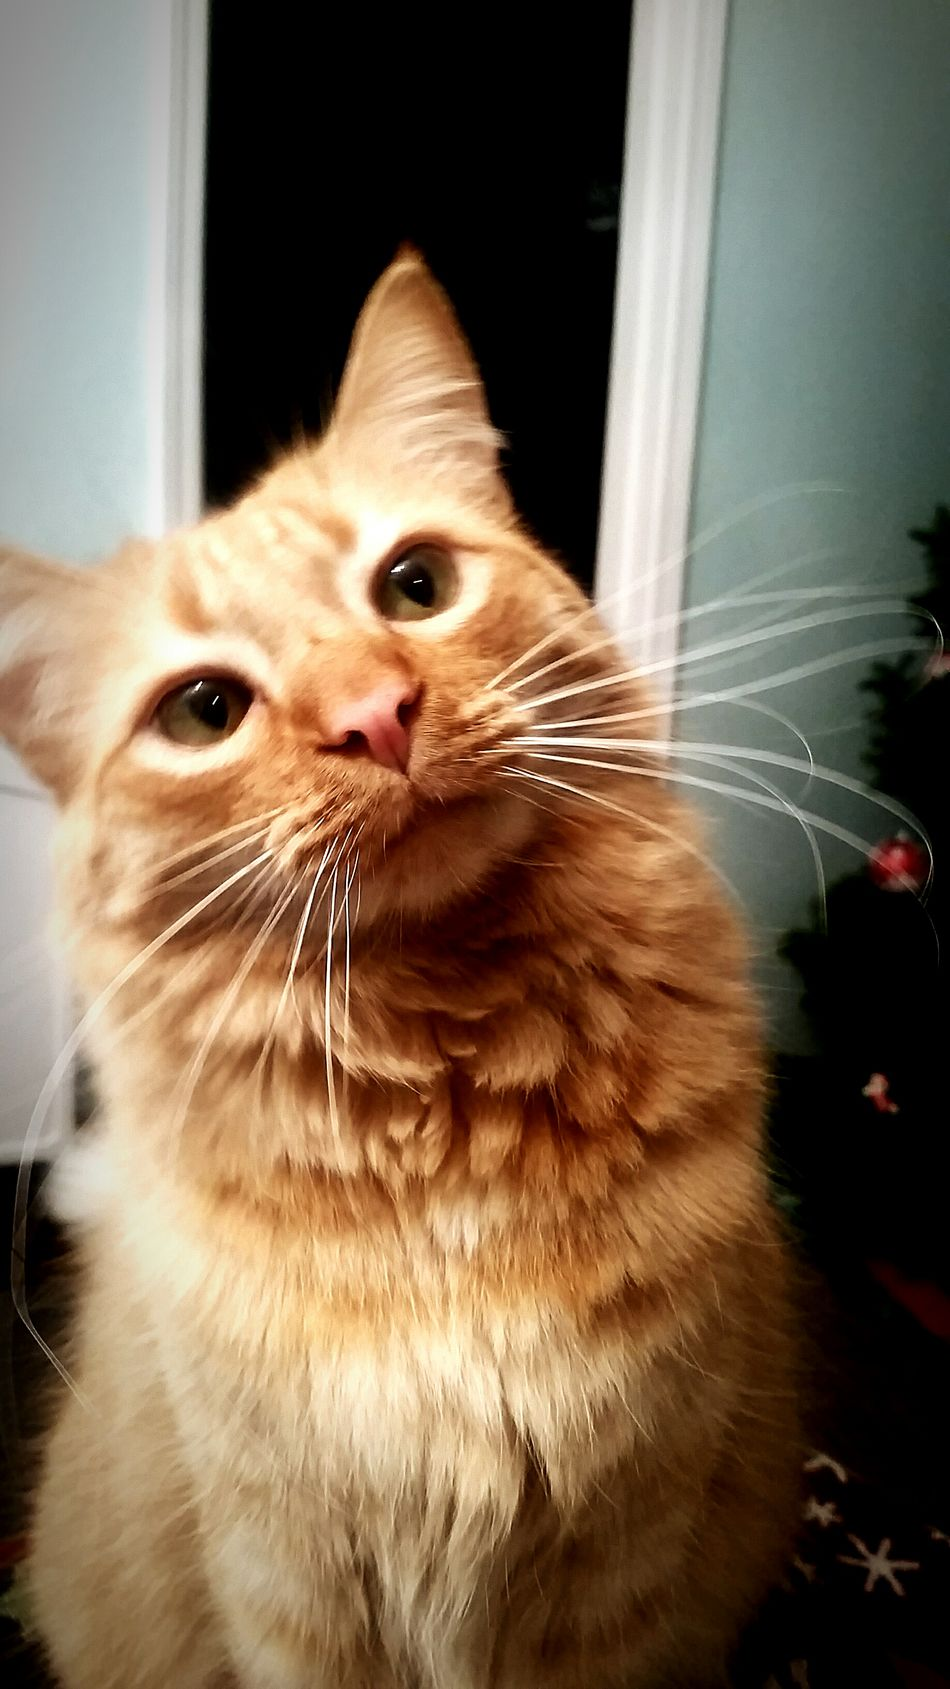 Pets Domestic Cat Domestic Animals Mammal One Animal Animal Themes Looking At Camera Feline Indoors  Portrait Close-up No People Day Nature Shadow Single Object Table Not A Horse